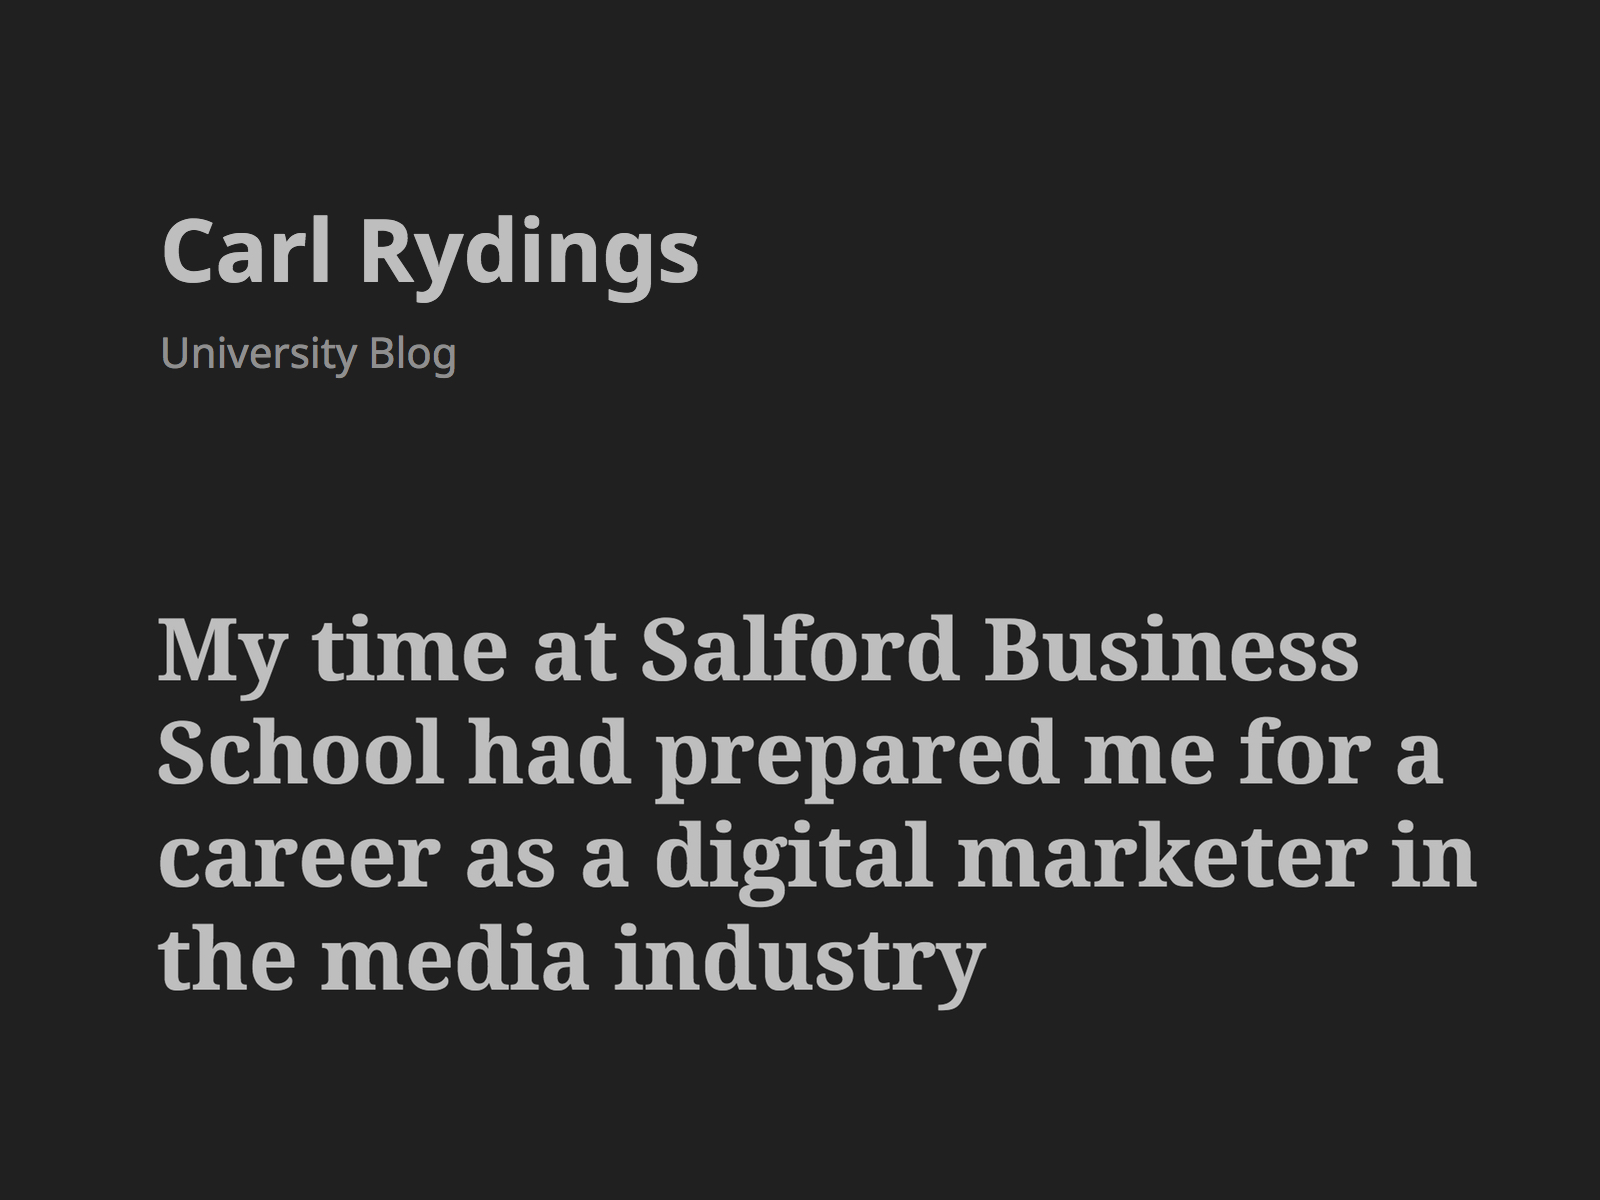 My time at Salford Business School